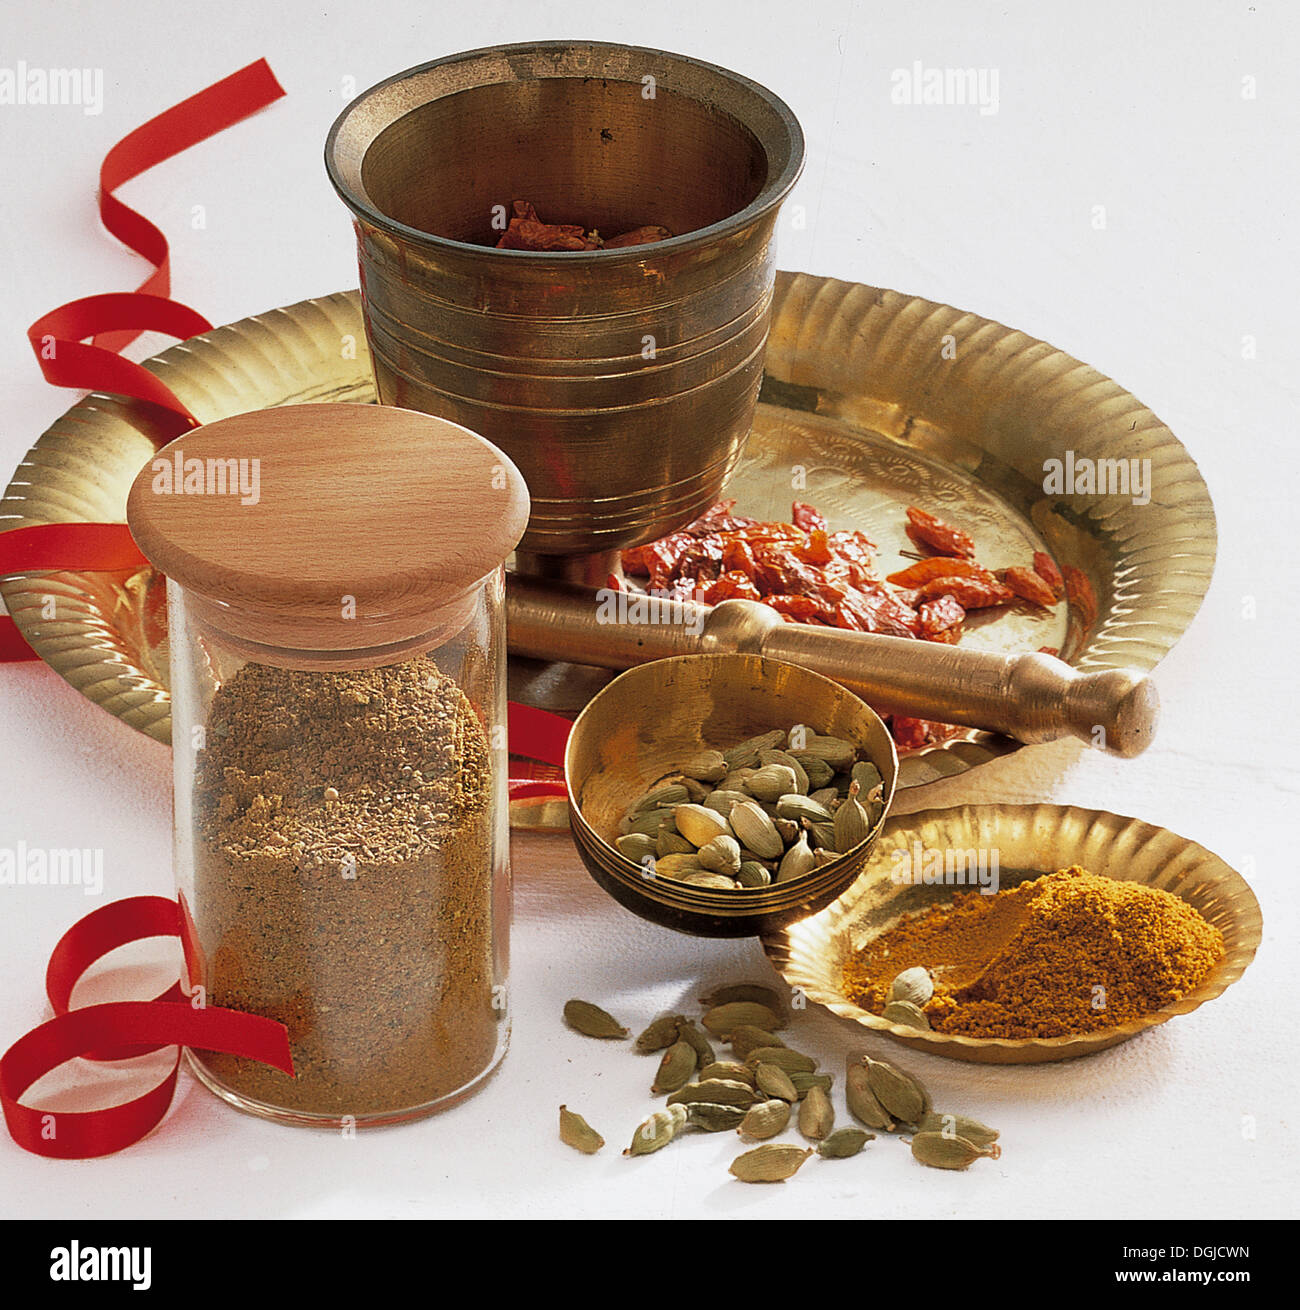 Garam Herbal Marsala Stock Photos Images Alamy Spices India Recipe Available For A Fee Image